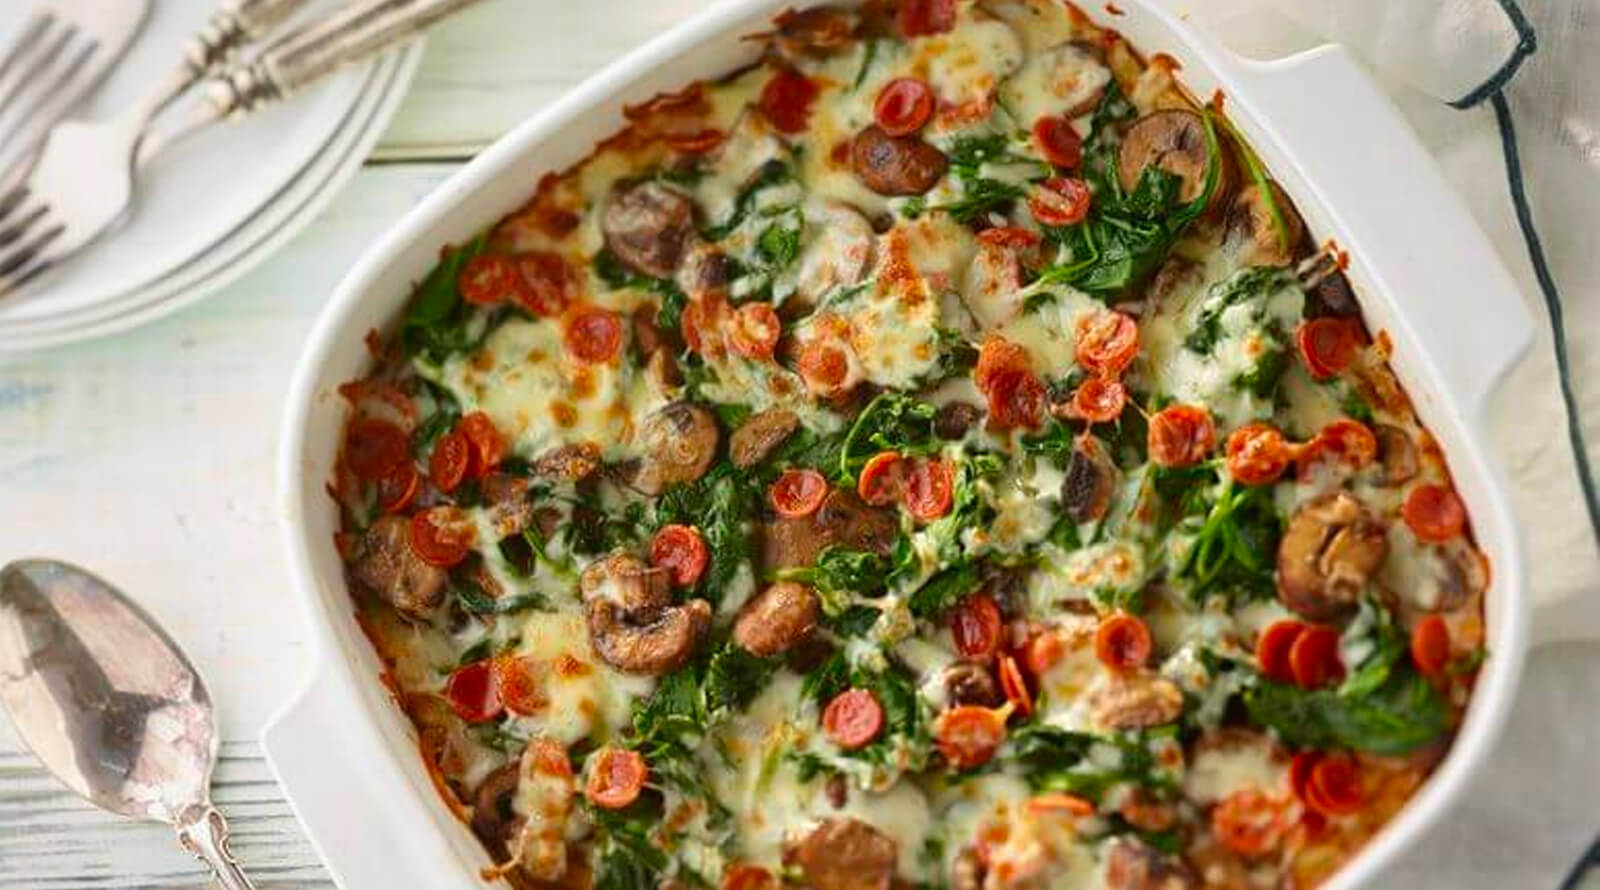 A dish of Pepperoni-Spinach Mashed Potato Crust Pizza